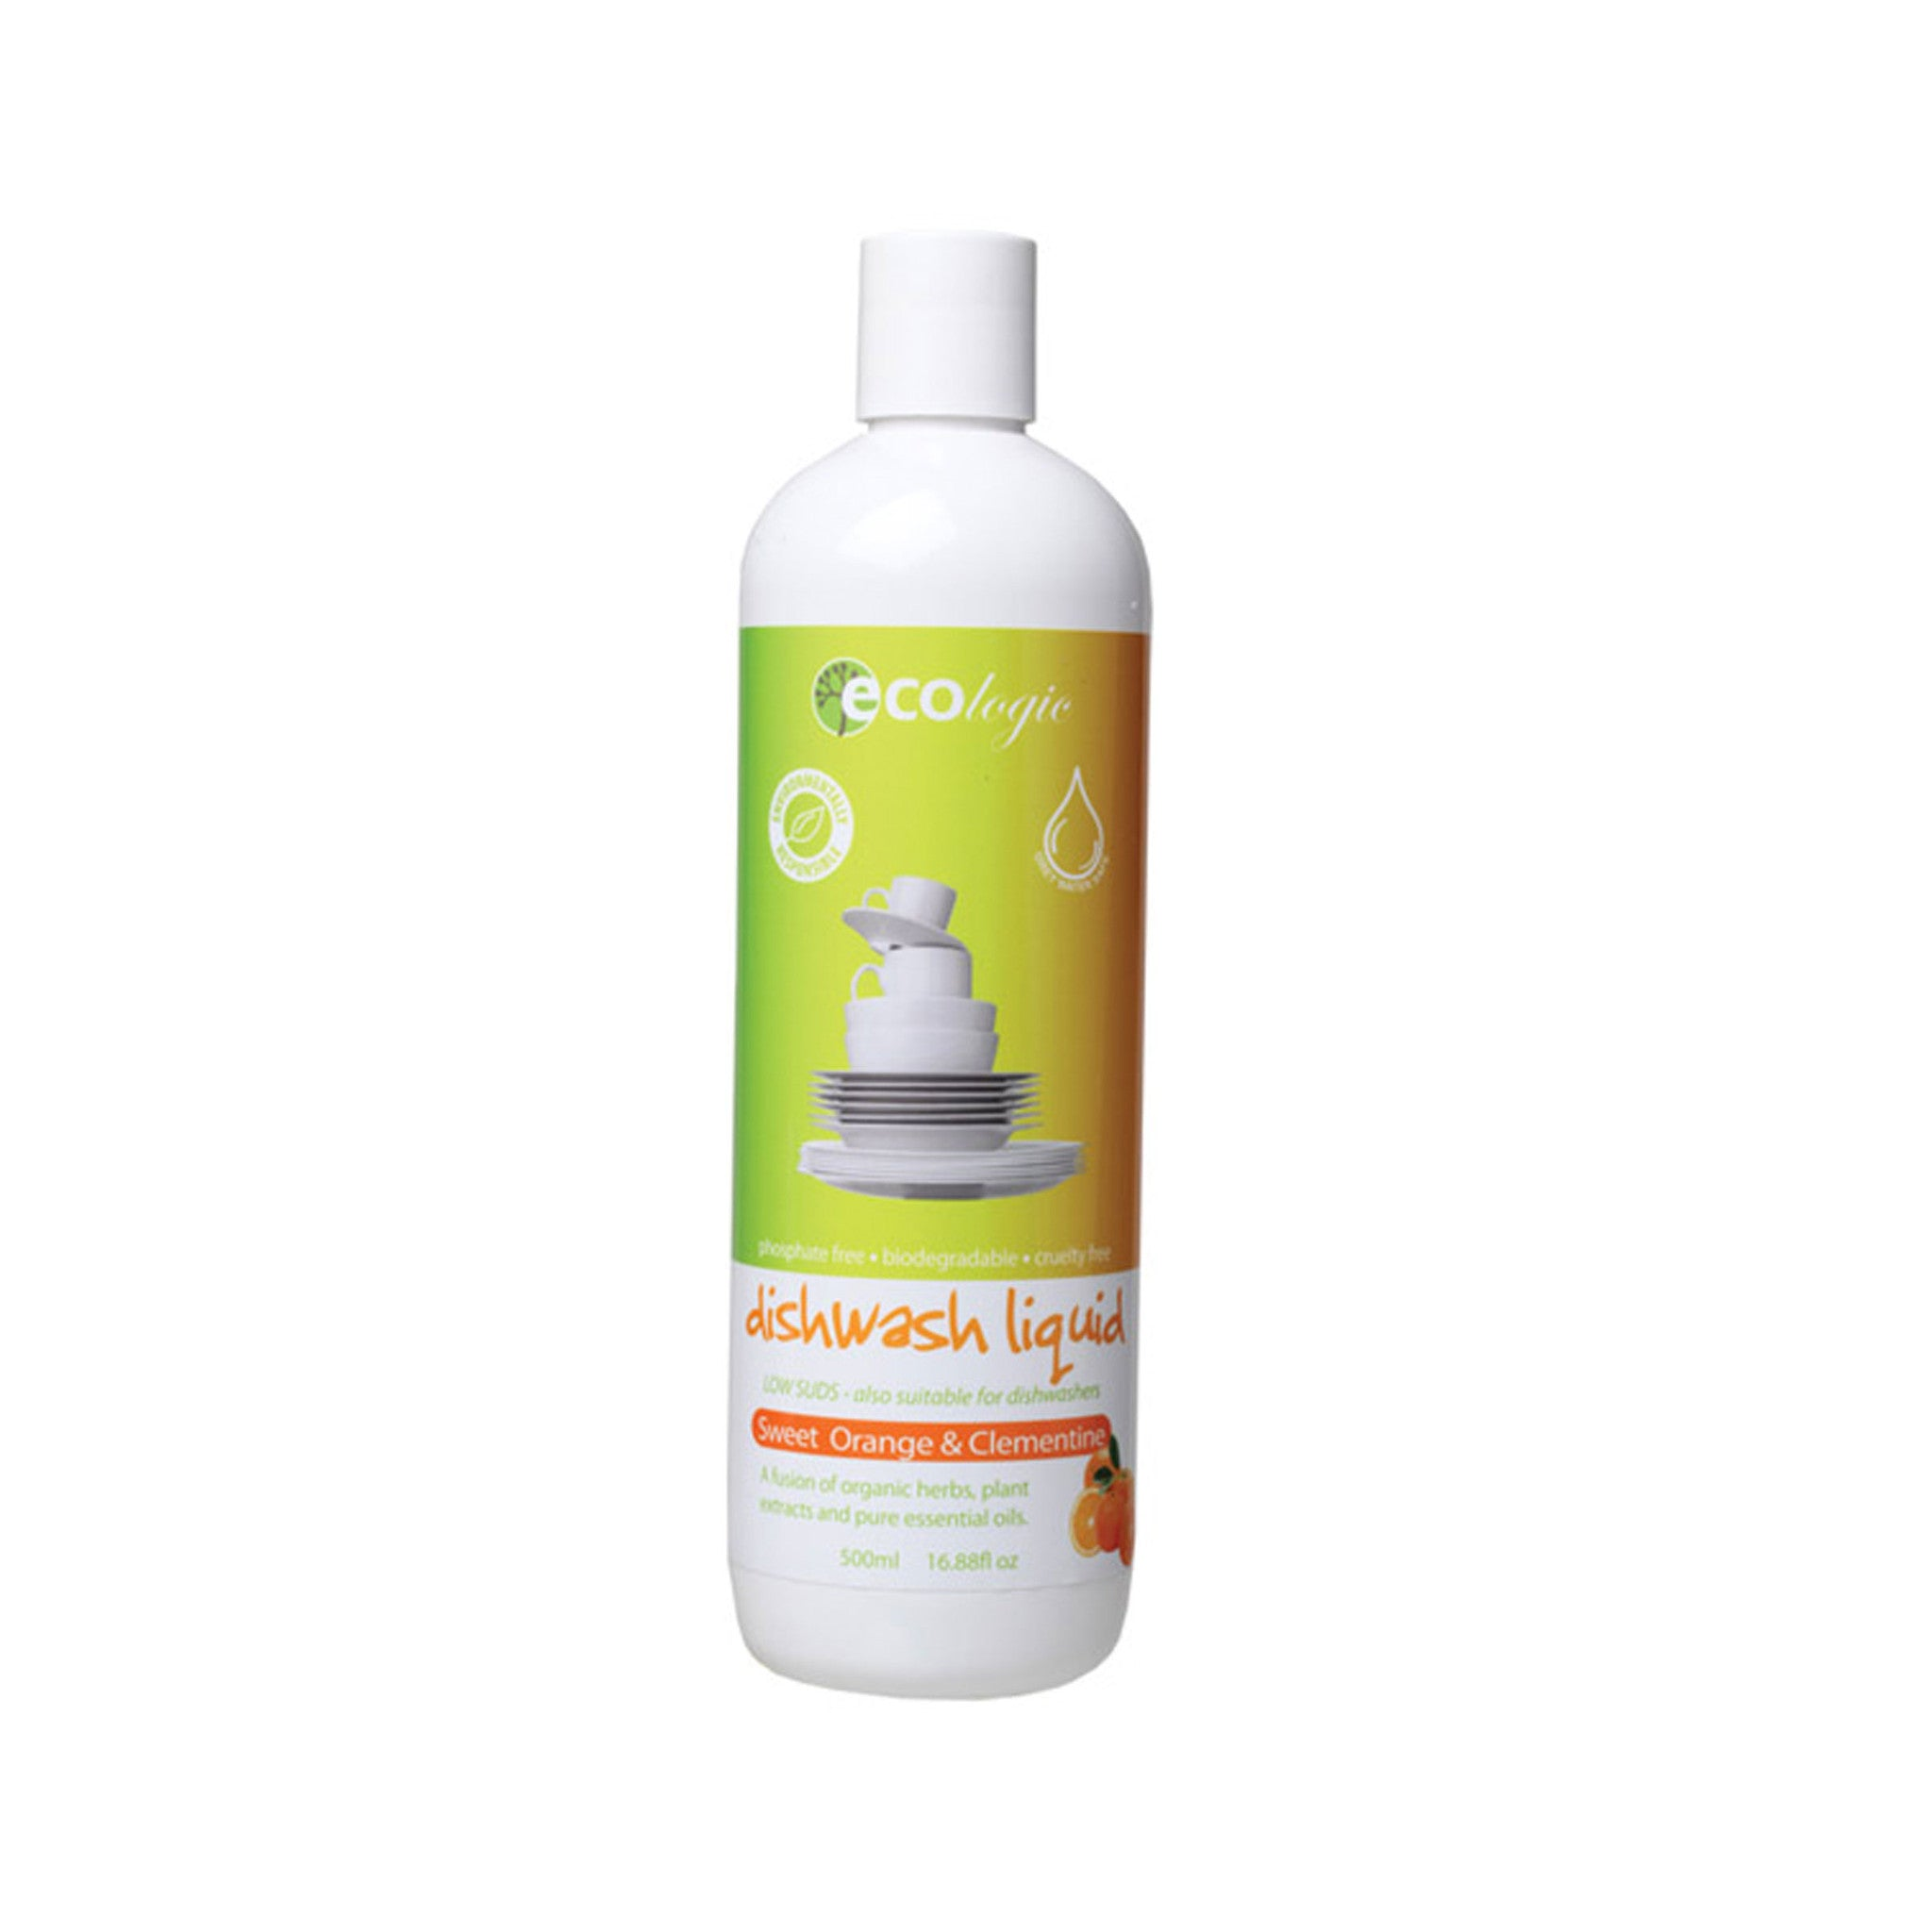 Ecologic Dishwashing Liquid Natural Dishwashing Ecologic Household Cleaning Supplies at Little Earth Nest Eco Shop